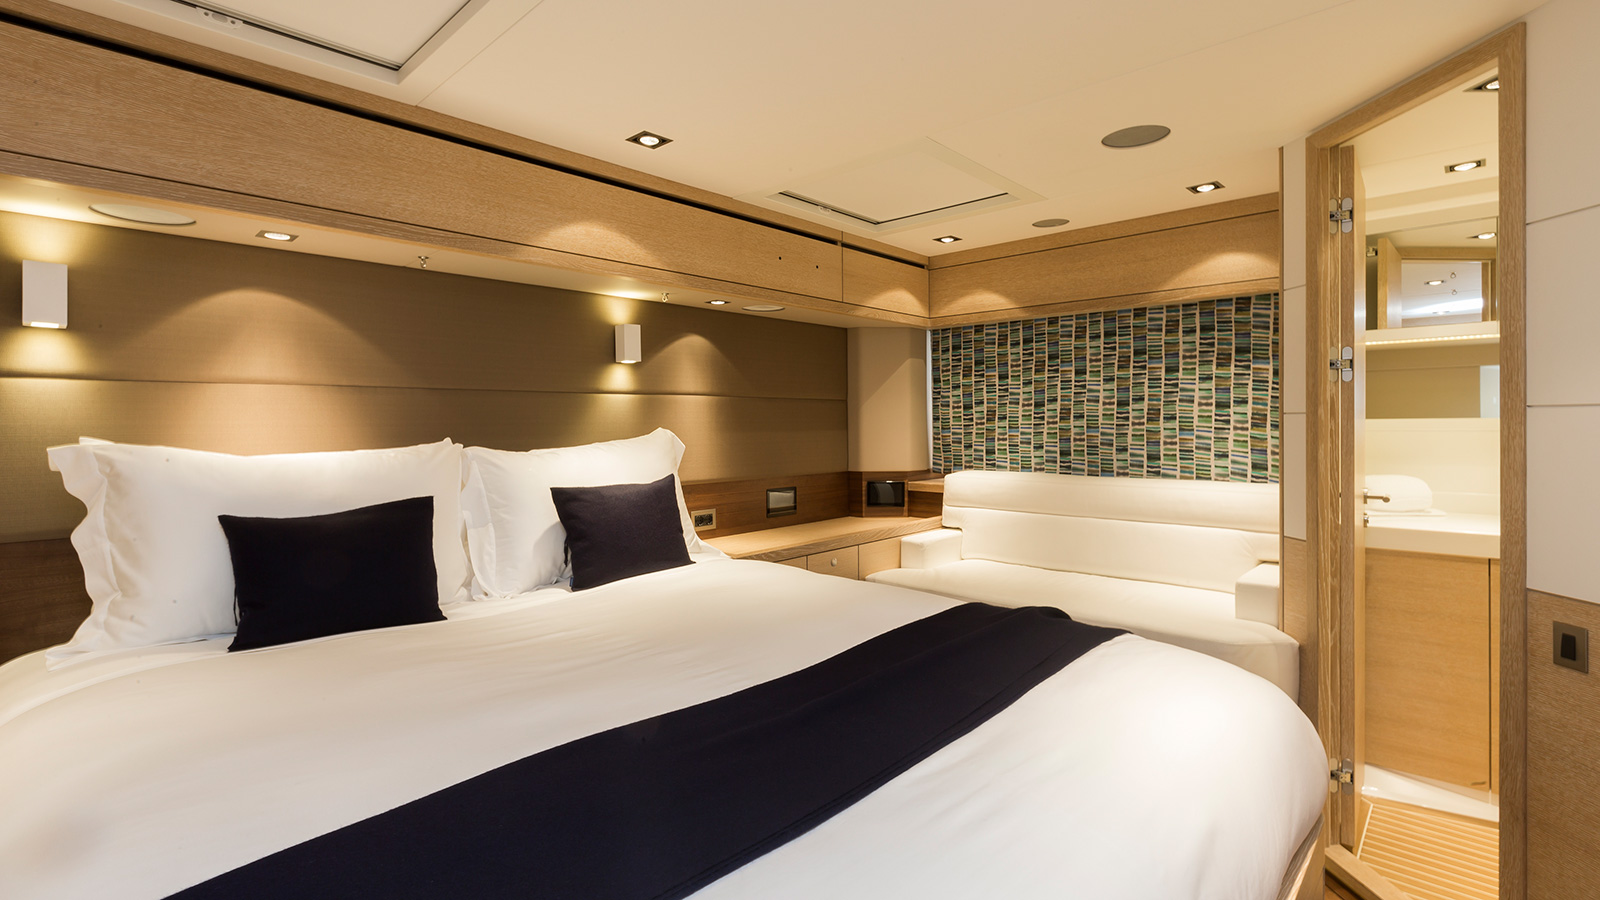 the-master-cabin-of-oyster-825-sailing-super-yacht-maegan